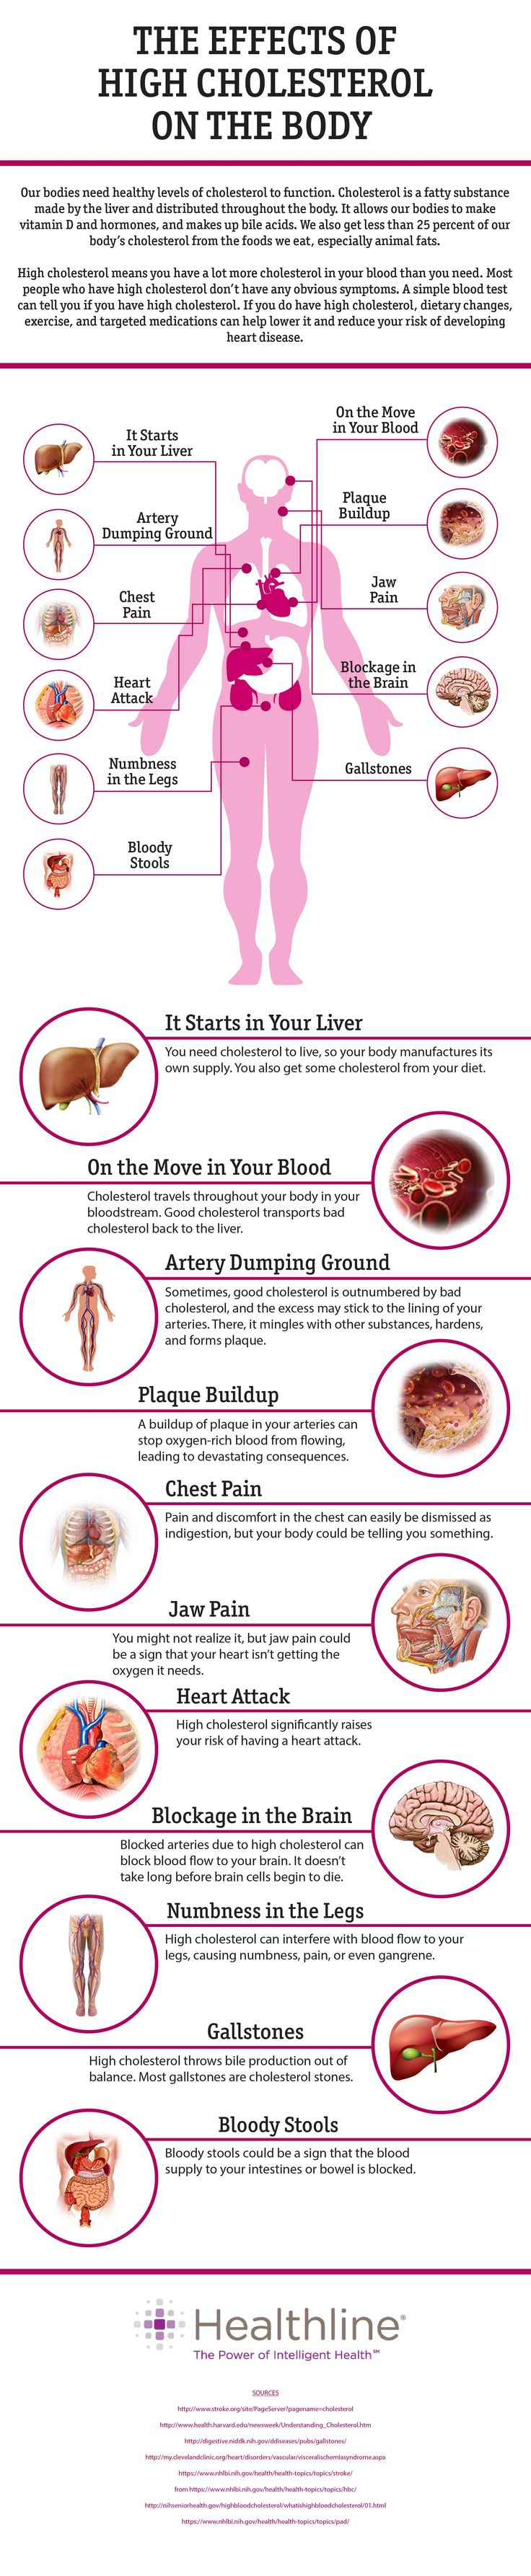 The Effects of High Cholesterol on the Body